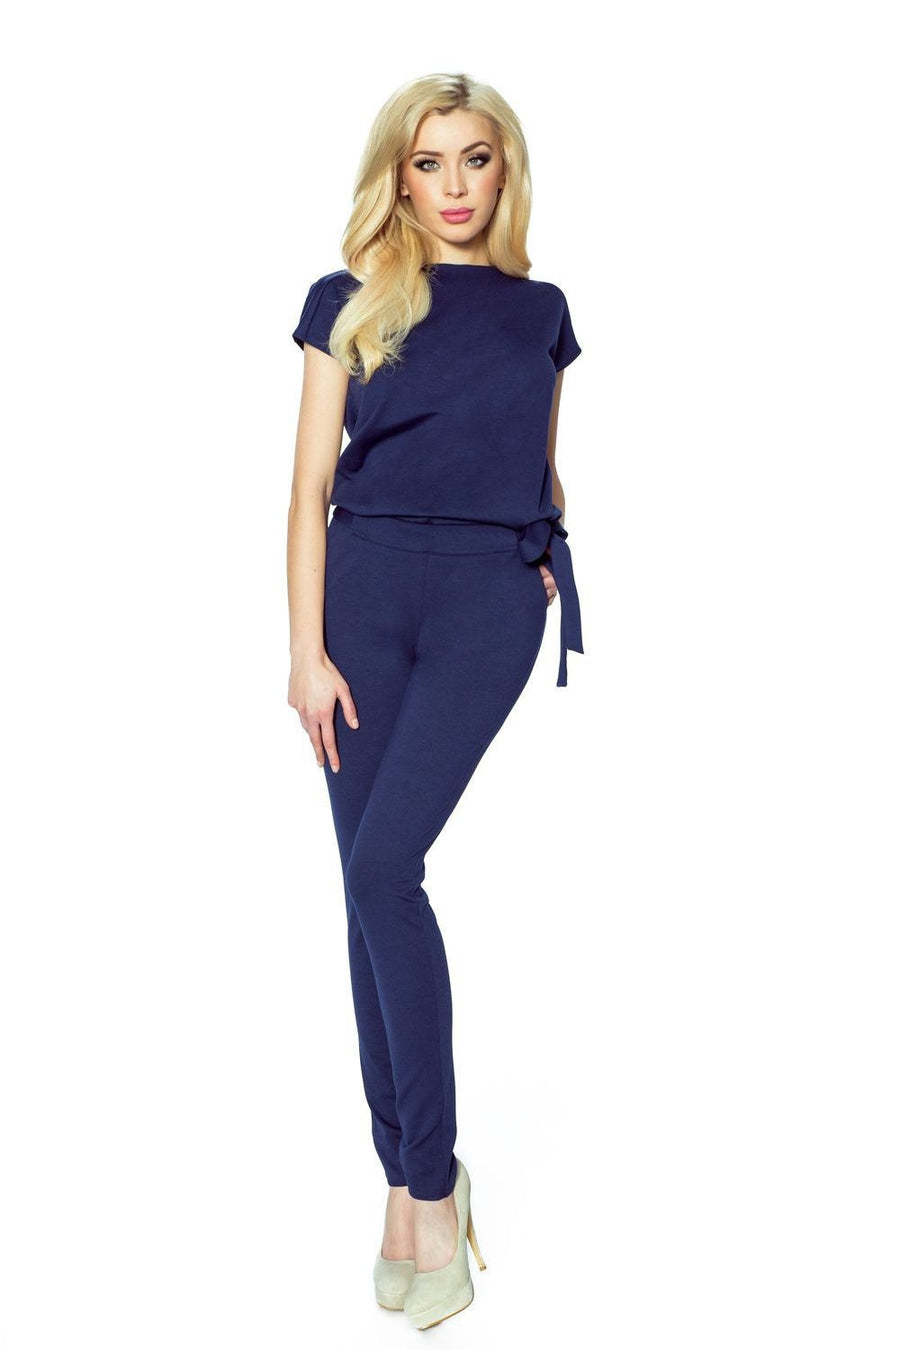 Suit 76875 Bergamo, Playsuits and Jumpsuits for Women, Bergamo, Très Fancy, blue, L, , , 76875, [fashion_accessories_online_shopping_canada]